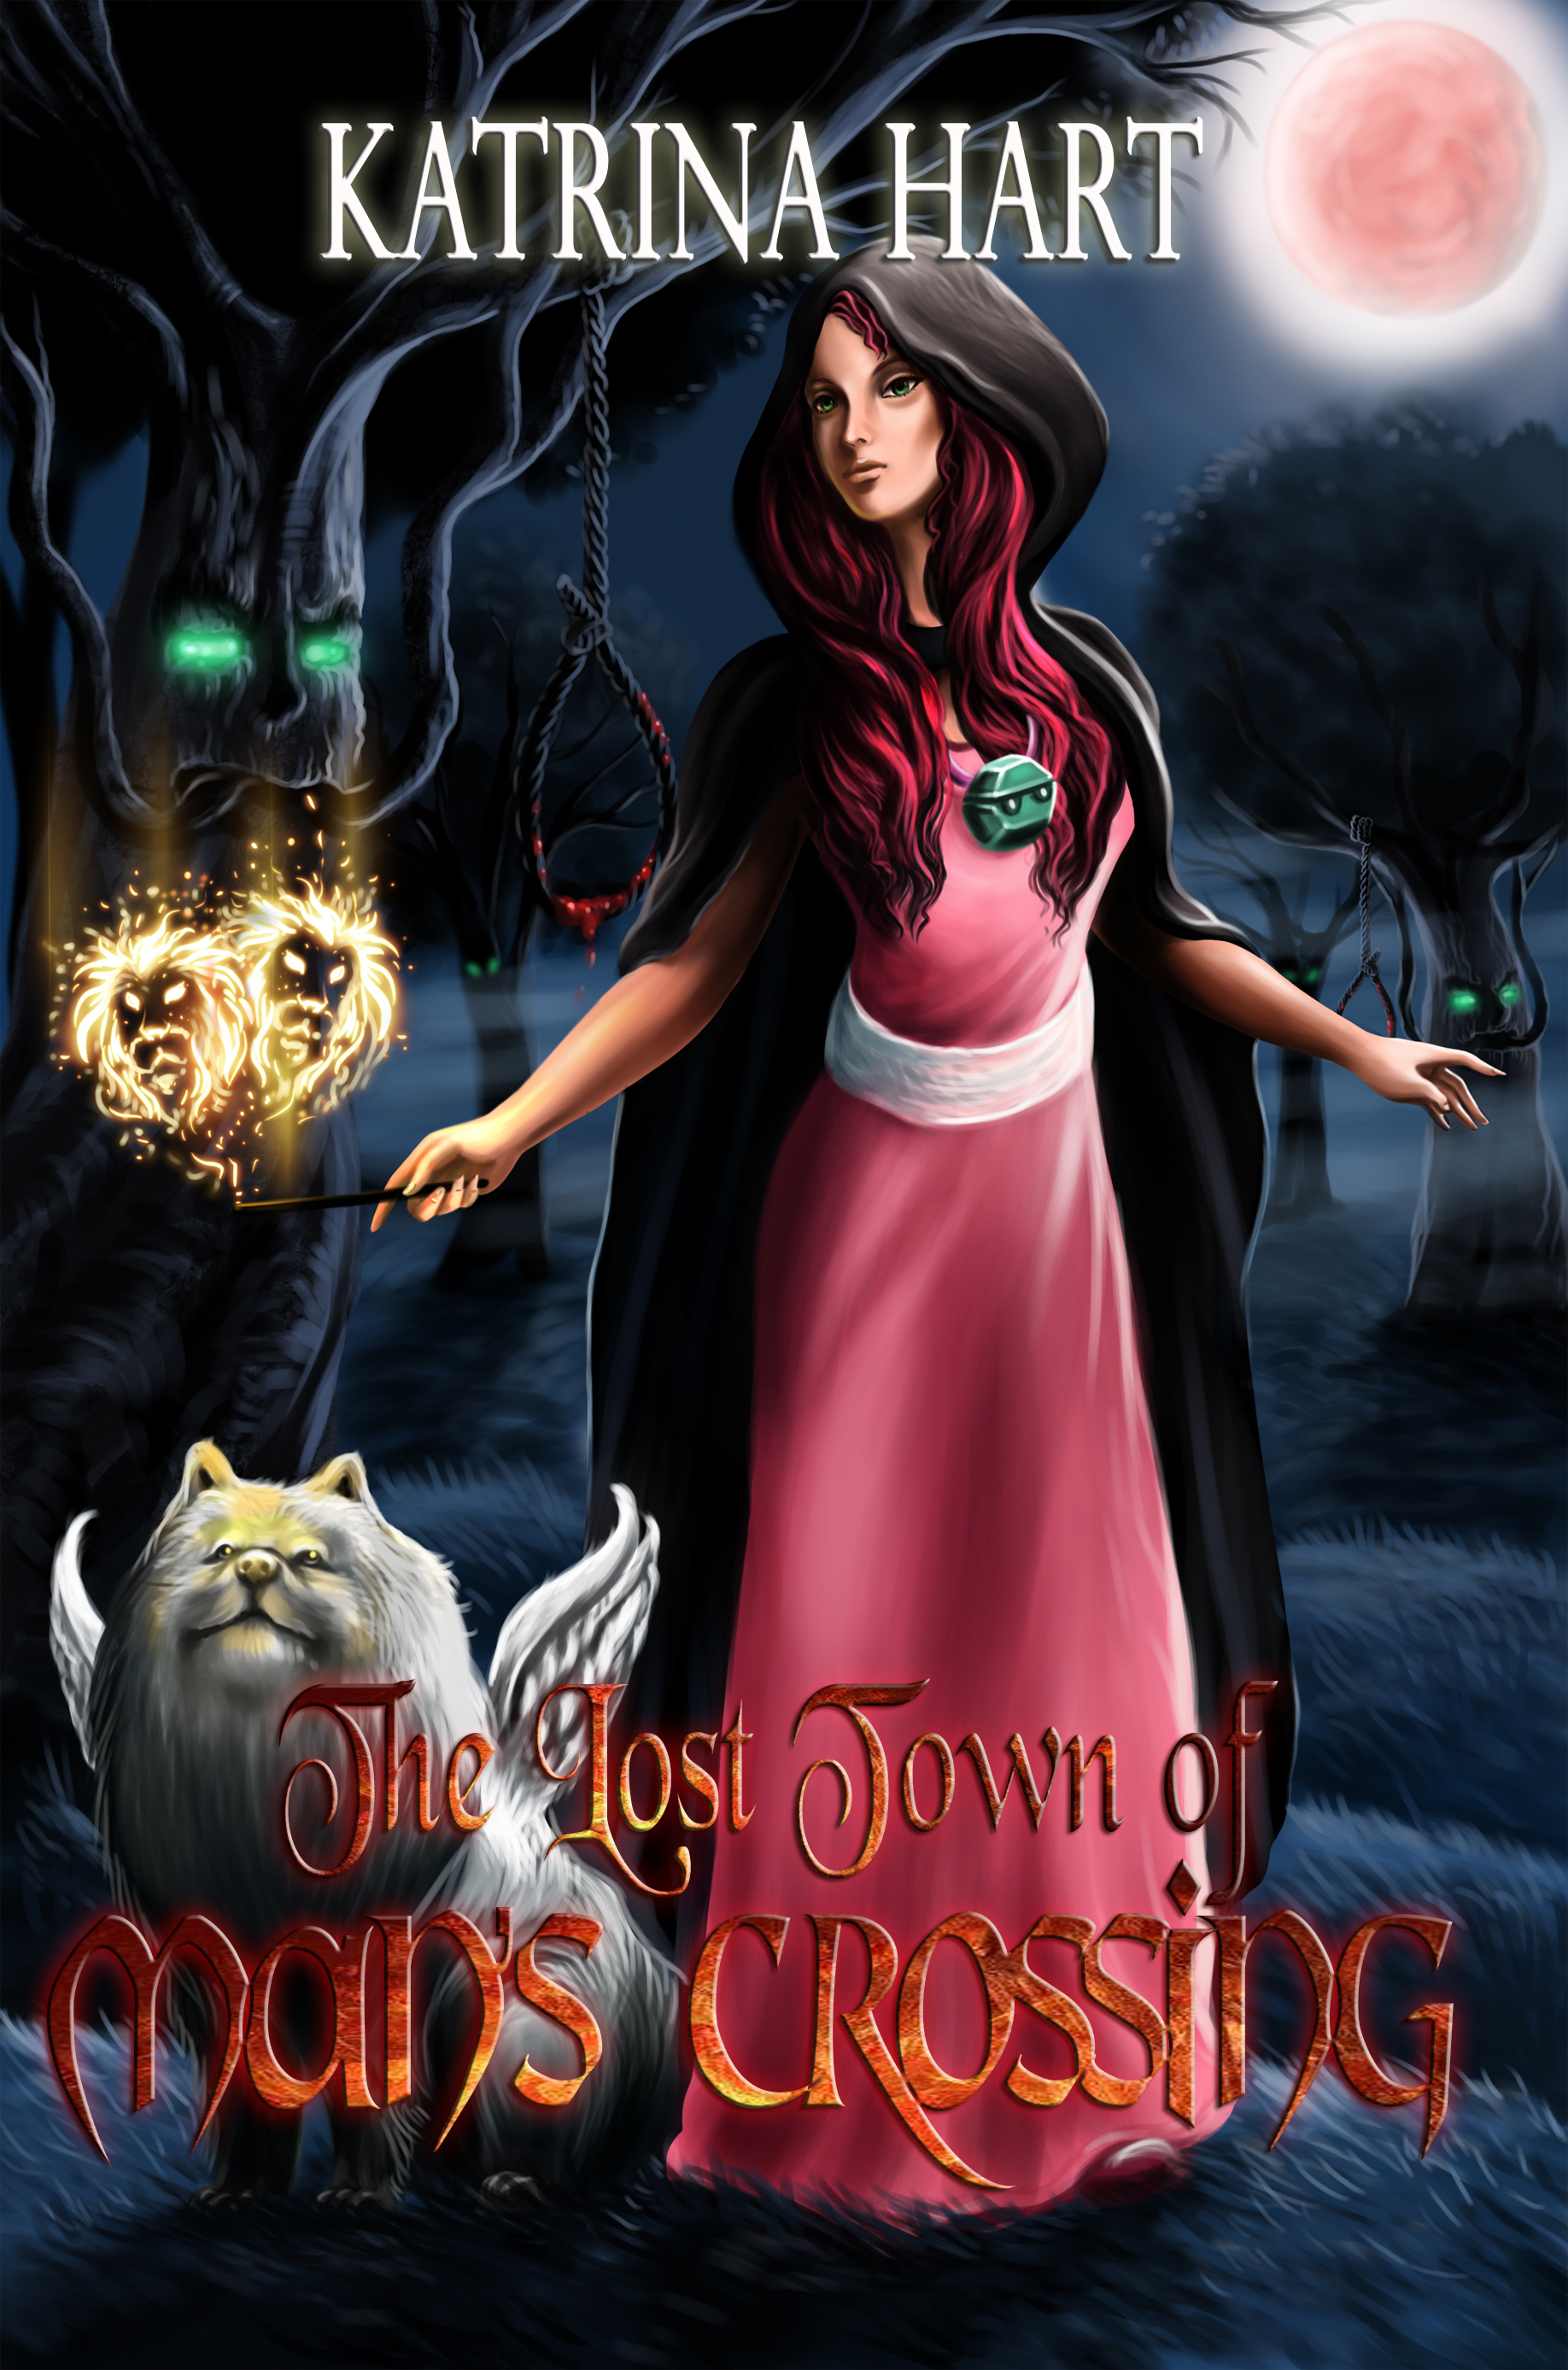 - After being shot, Suzy and her friend, Bill, are offered a second chance at life in The Lost Town Of Man's Crossing, a land to which the chosen few are transported by their personal Crossing Creatures. There, Suzy encounters the evil Cole, who is all-out to gain the highest power of the land.But Suzy comes from a magical family: her grandmother, Miss Hollow, founded a coven called Hollow-Wings, and her grandfather left her a secret, life-changing pouch. Soon, Cole craves that secret pouch more than anything.It's Suzy versus Cole – and one of them has met their match.